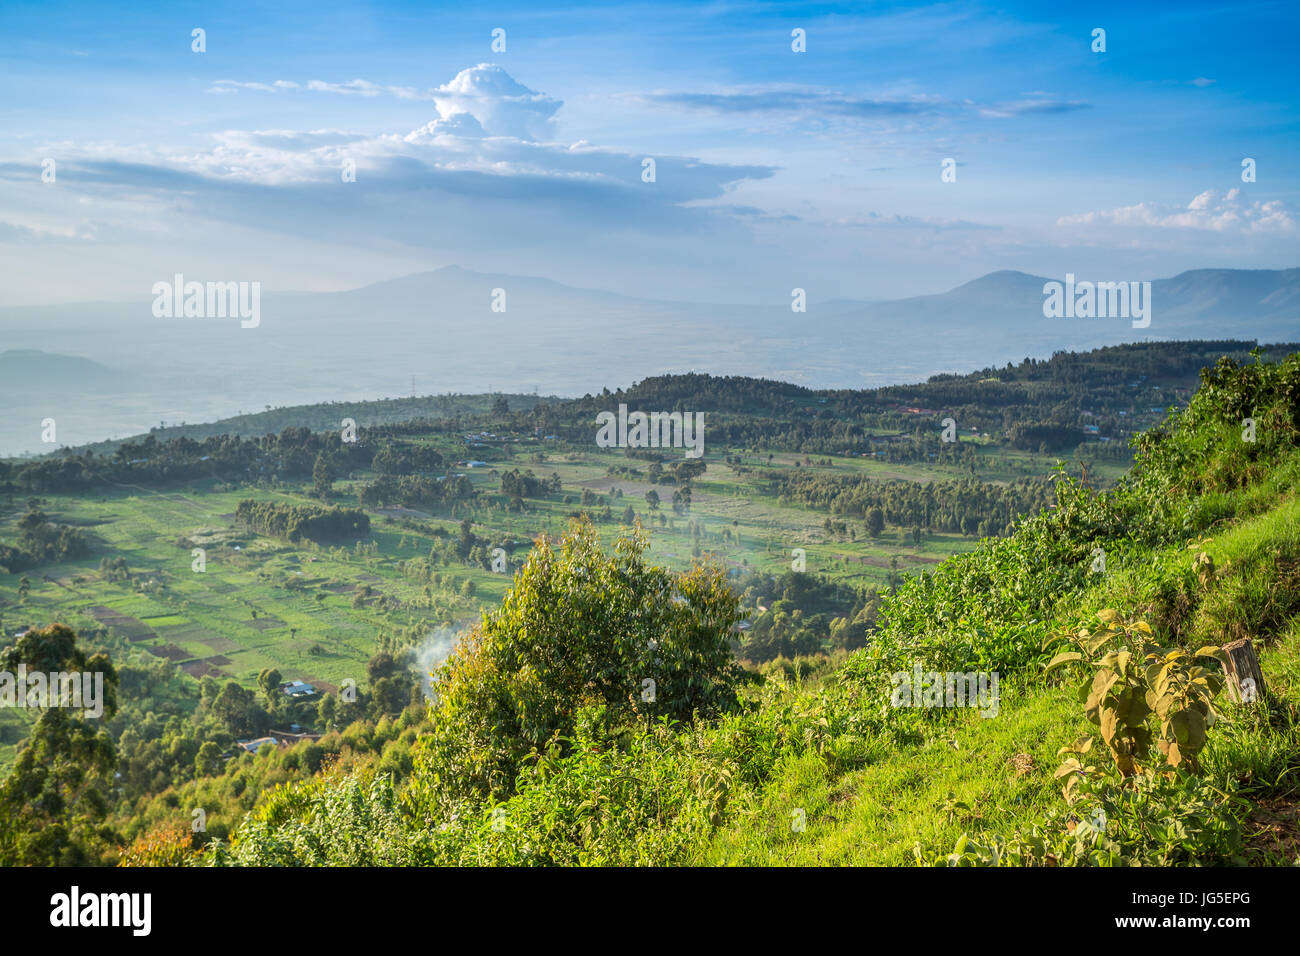 Great Rift Valley landscape taken from Mouse Summit, Kenya Stock Photo